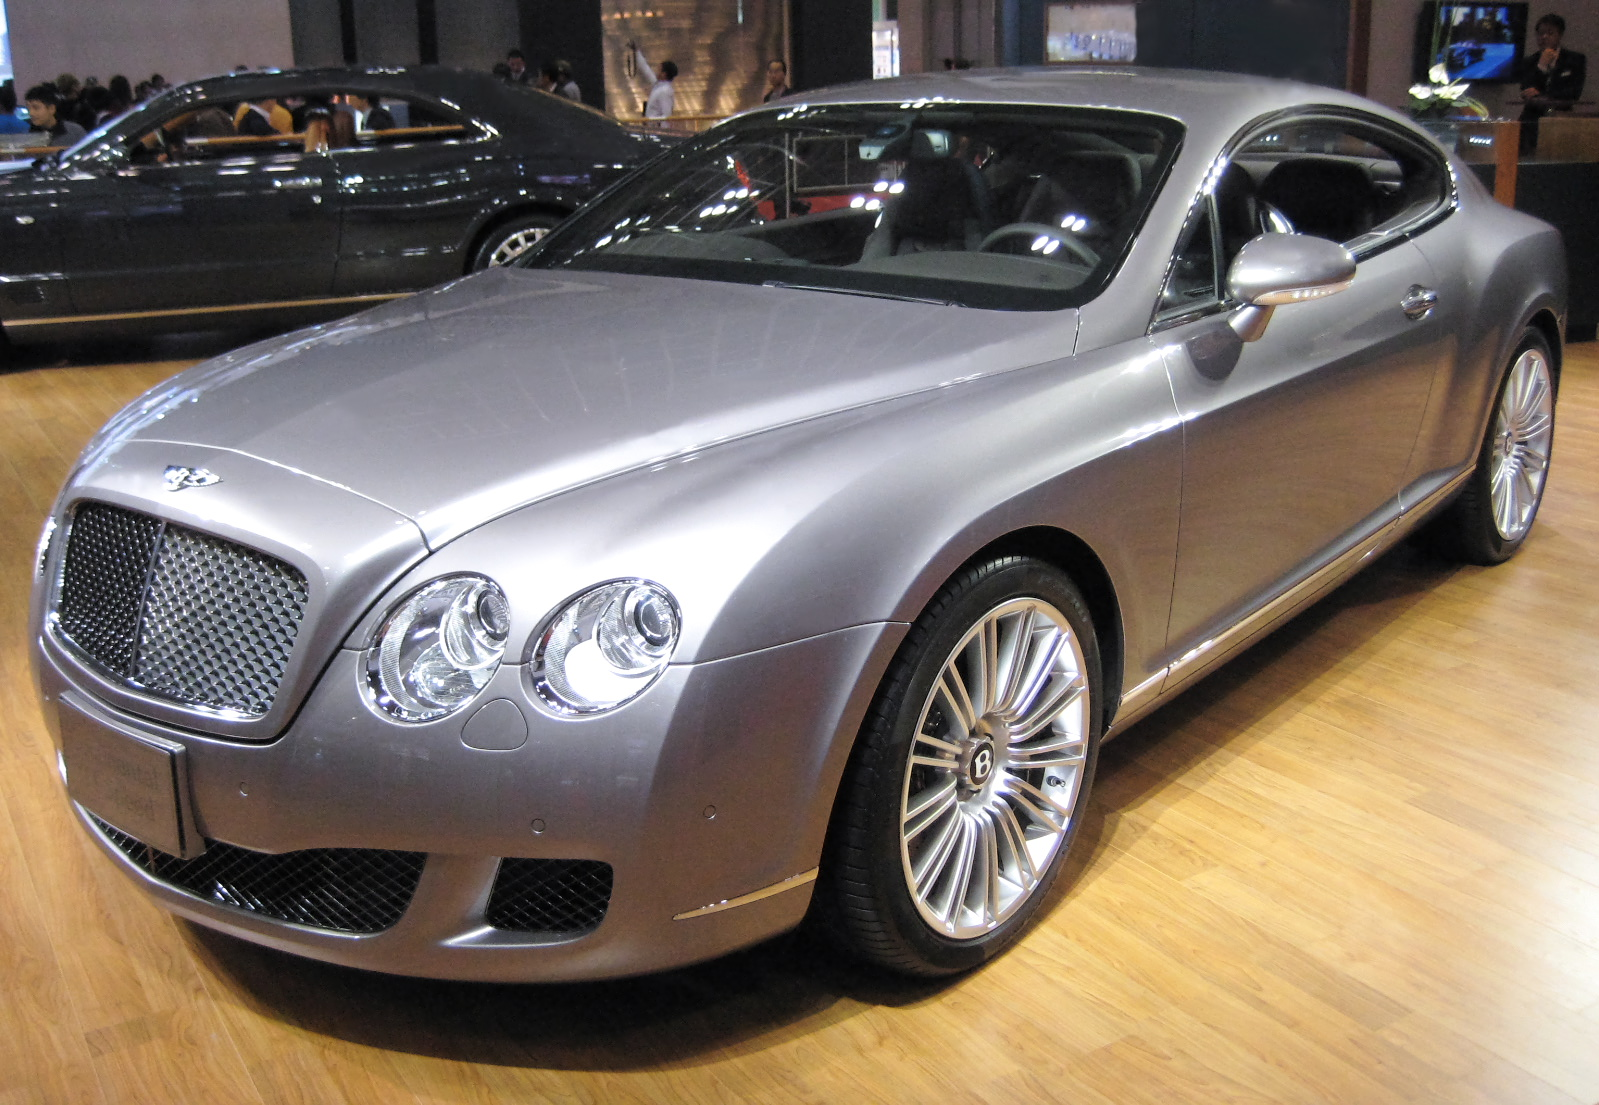 Hire a Bentley at PB Supercars